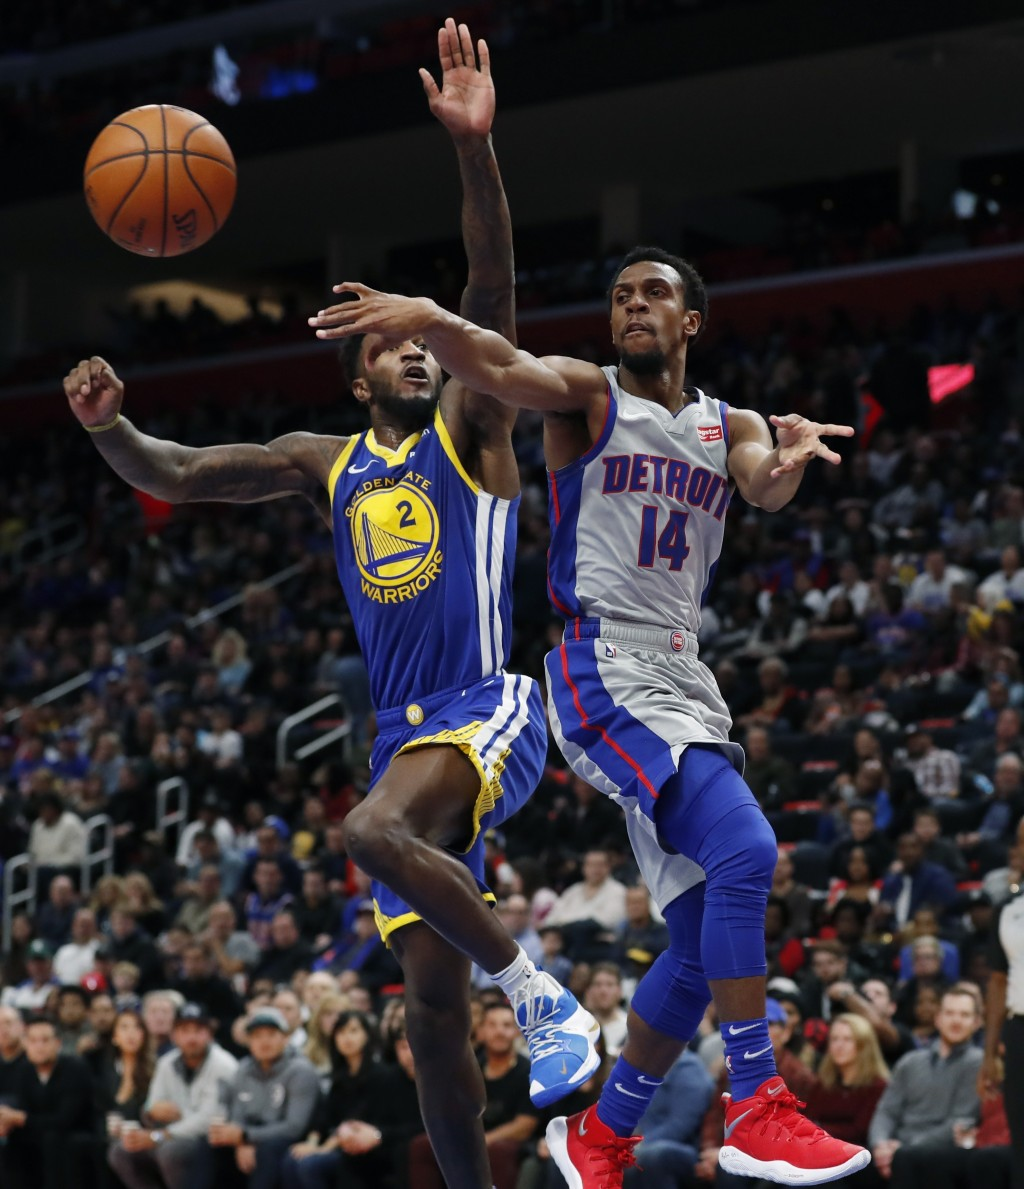 Detroit Pistons guard Ish Smith (14) passes as Golden State Warriors forward Jordan Bell (2) defends during the first half of an NBA basketball game,